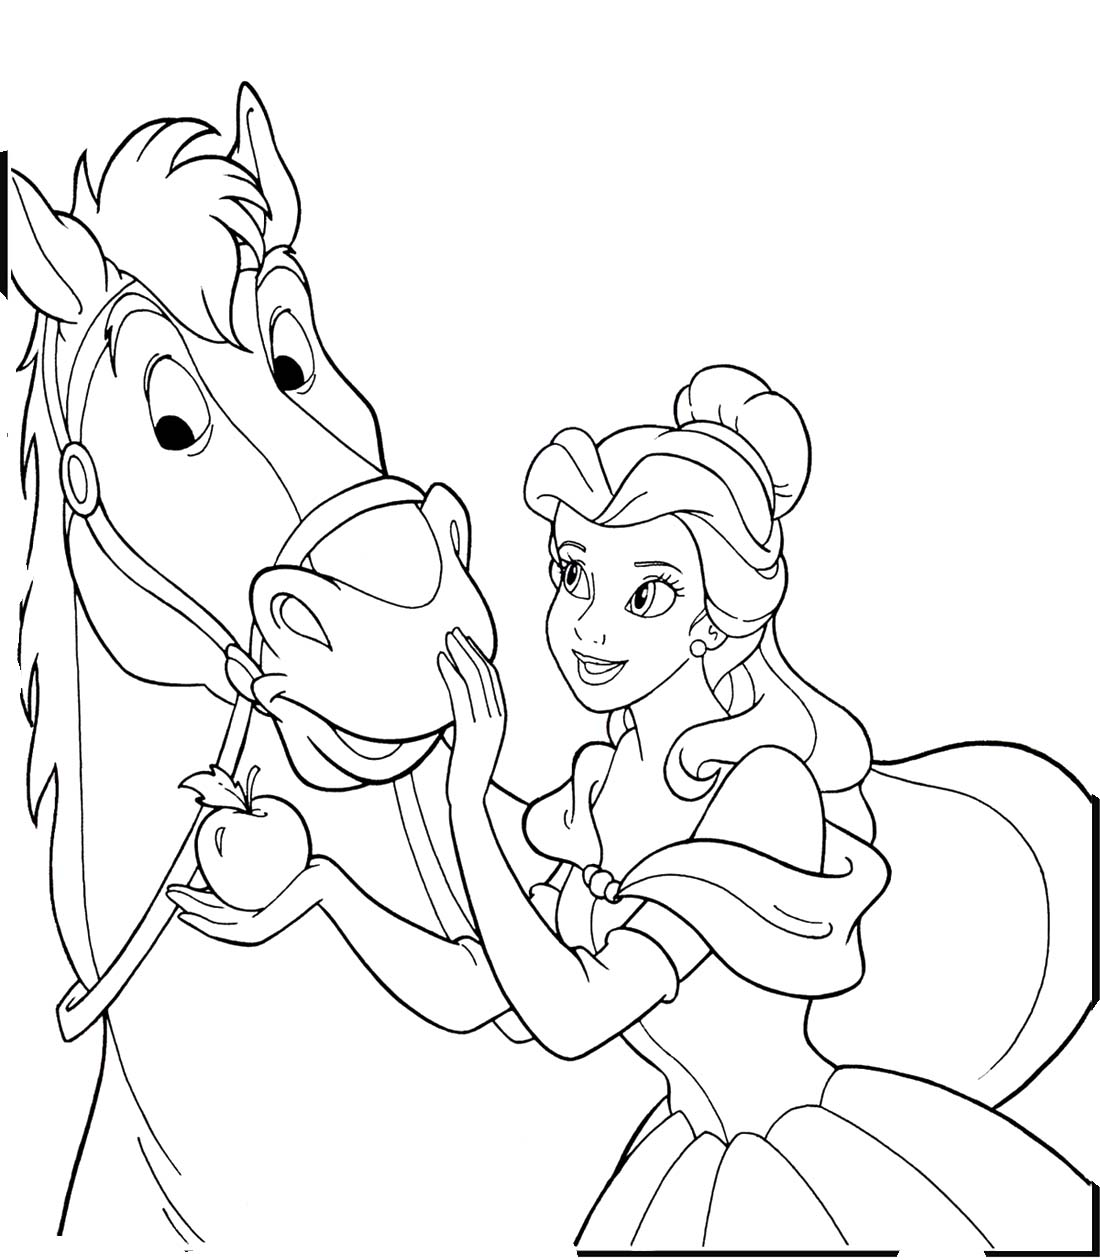 Unicorn And Princess Coloring Pages - Coloring Home